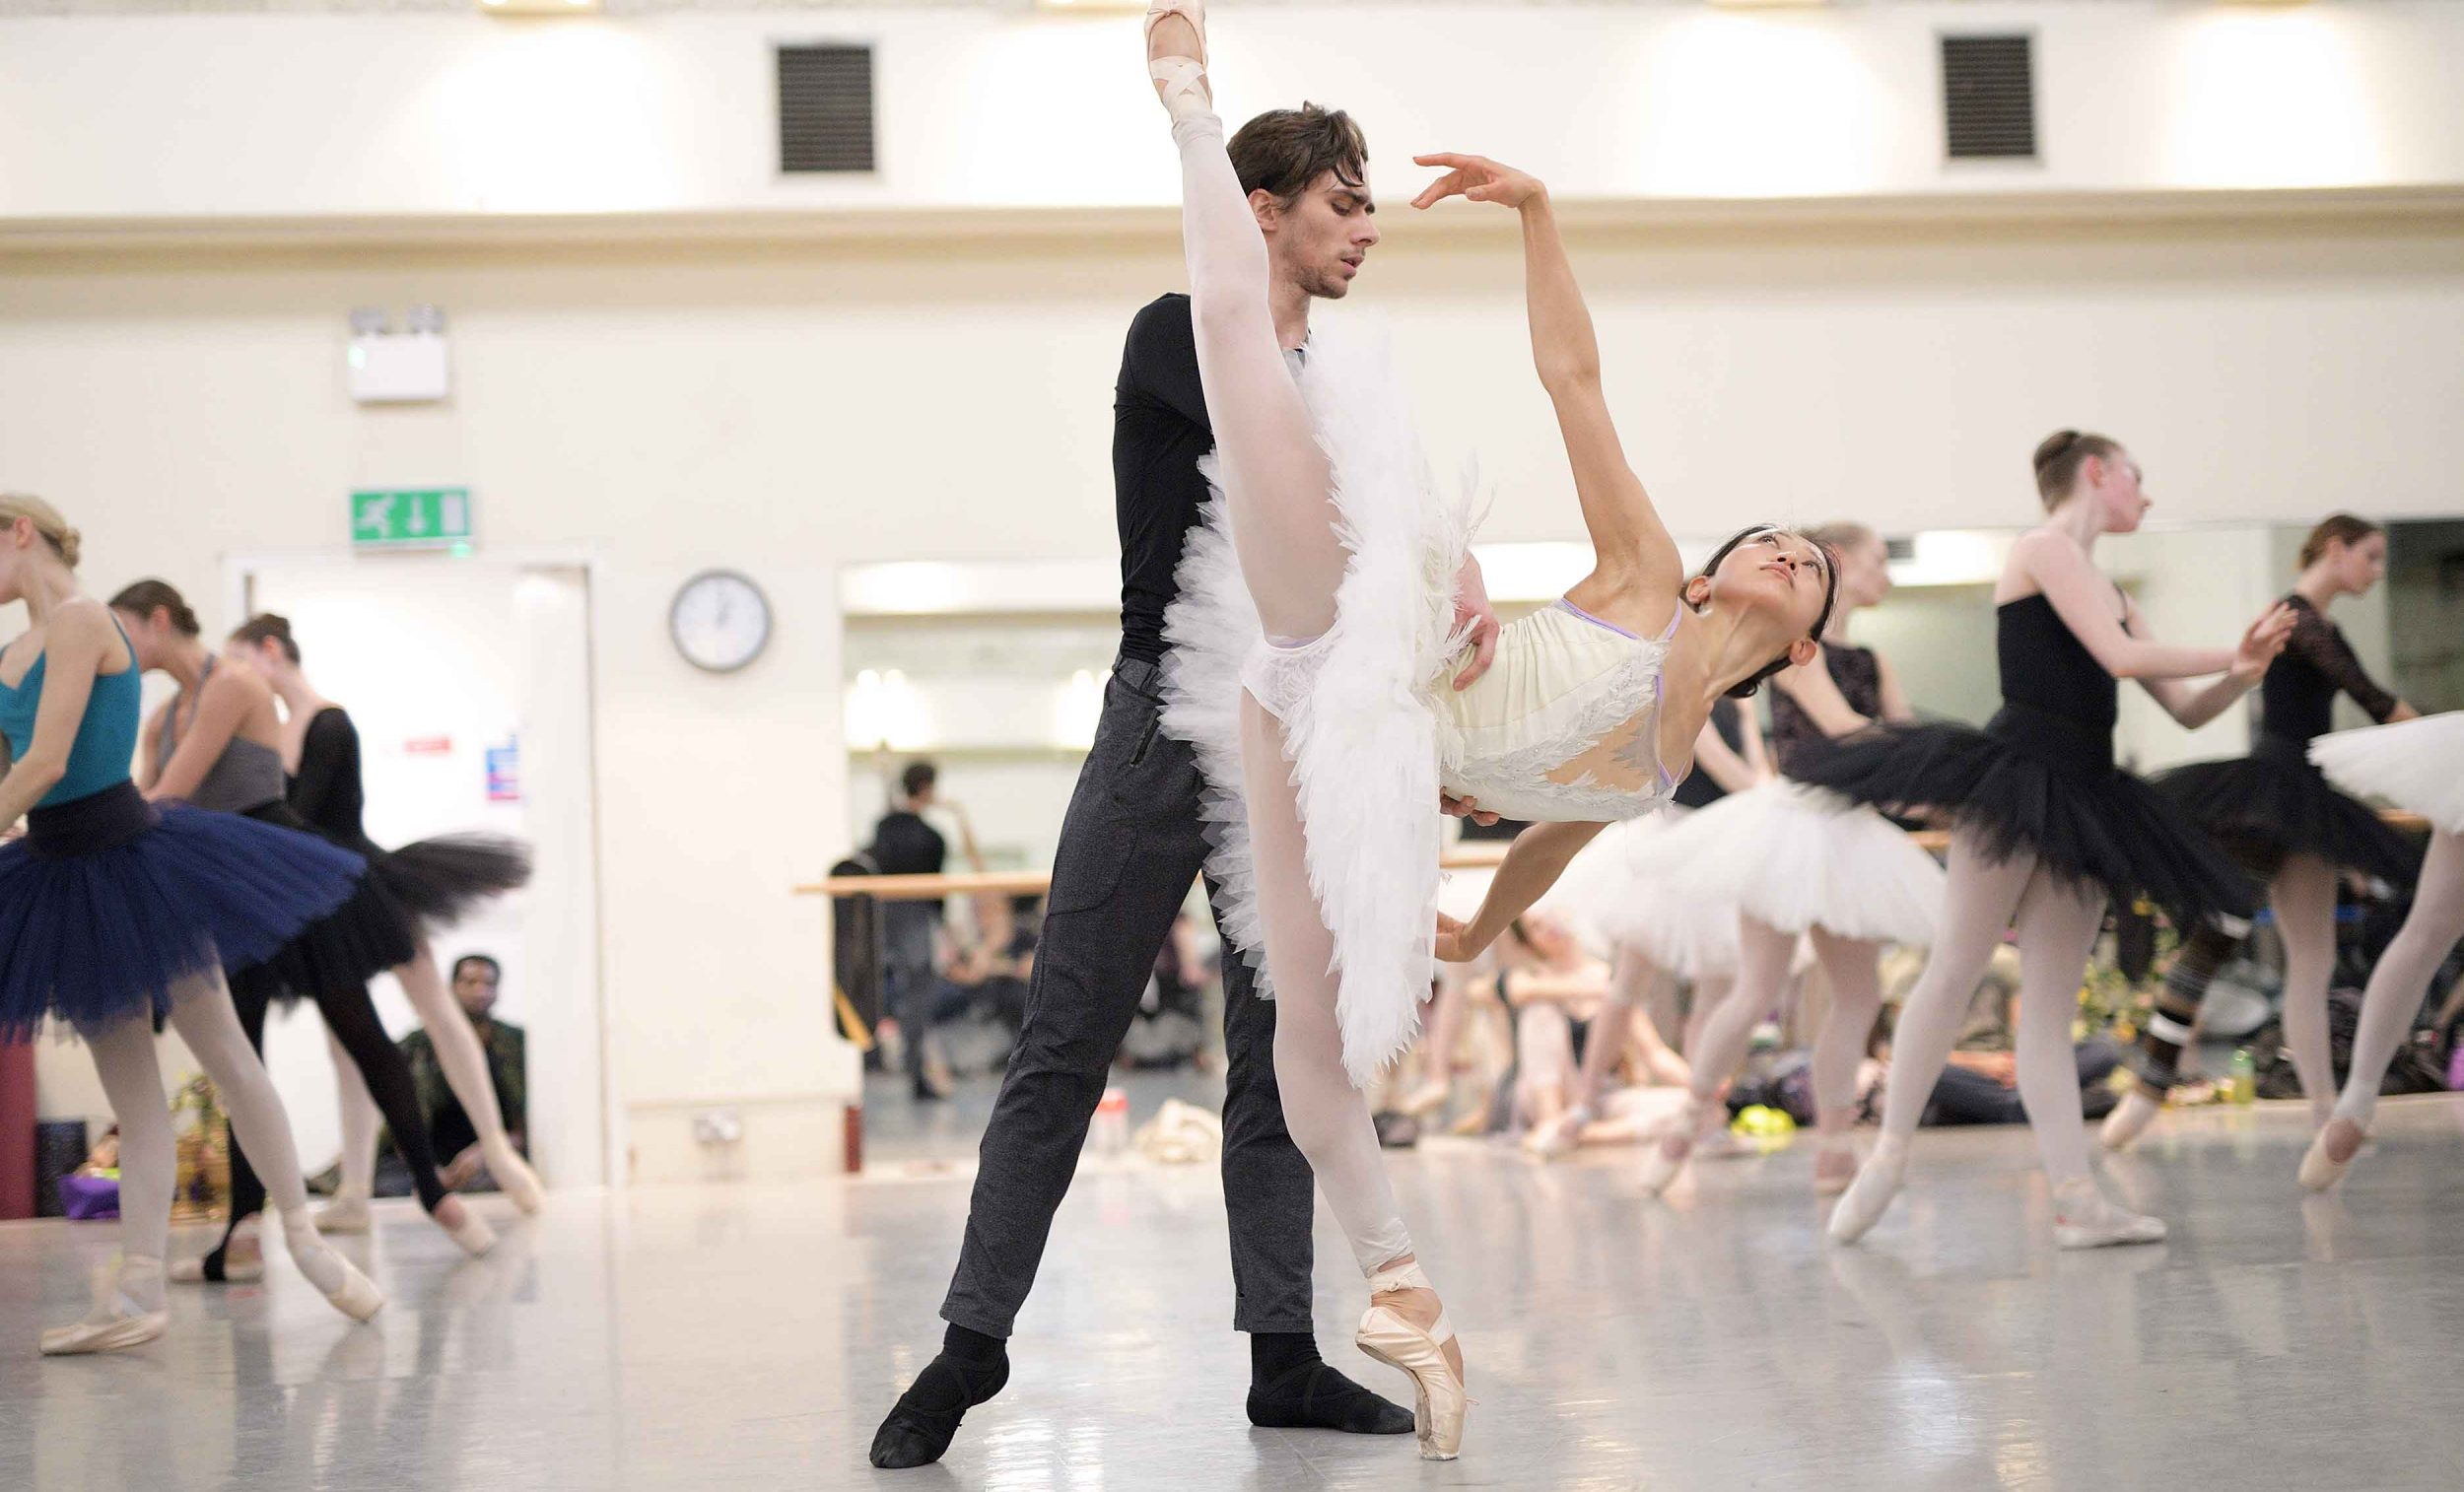 Erina-Takahashi-and-Fernando-Gabriele-Frola-in-rehearsals-for-Swan-Lake-(c)-Laurent-Liotardo-(2)_web